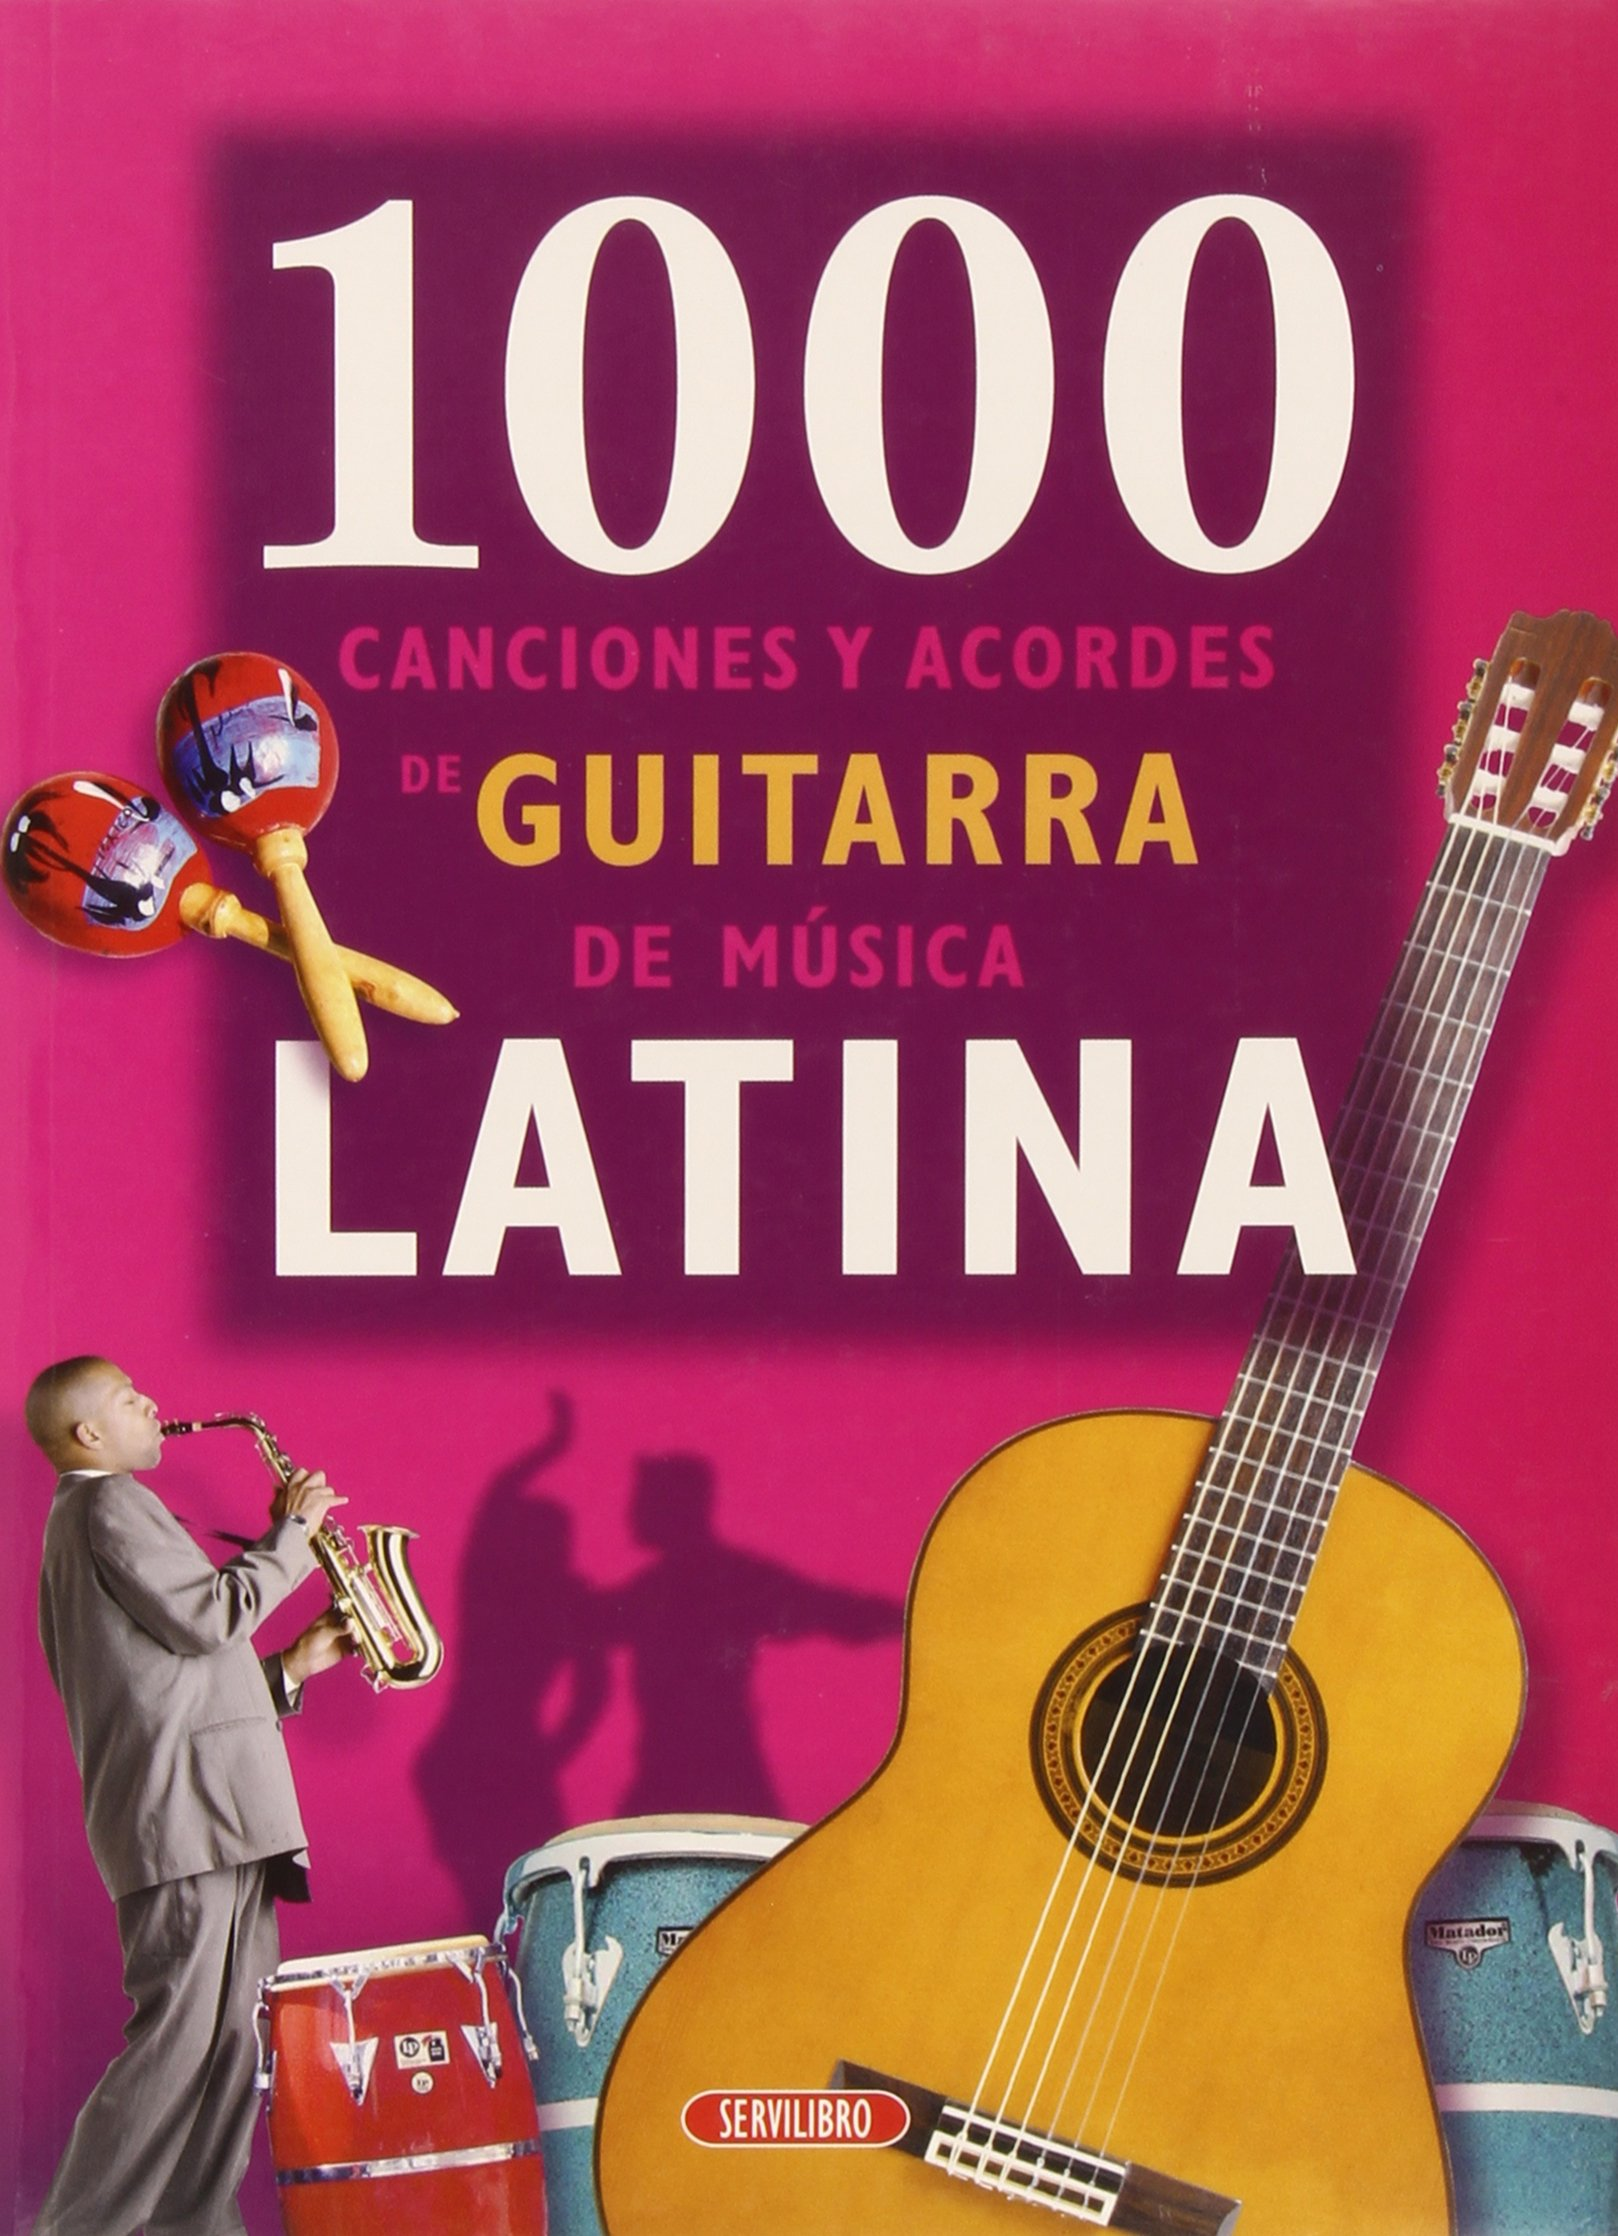 1000 Canciones Con Acordes De Guitarra - Canciones Latinas: Amazon ...